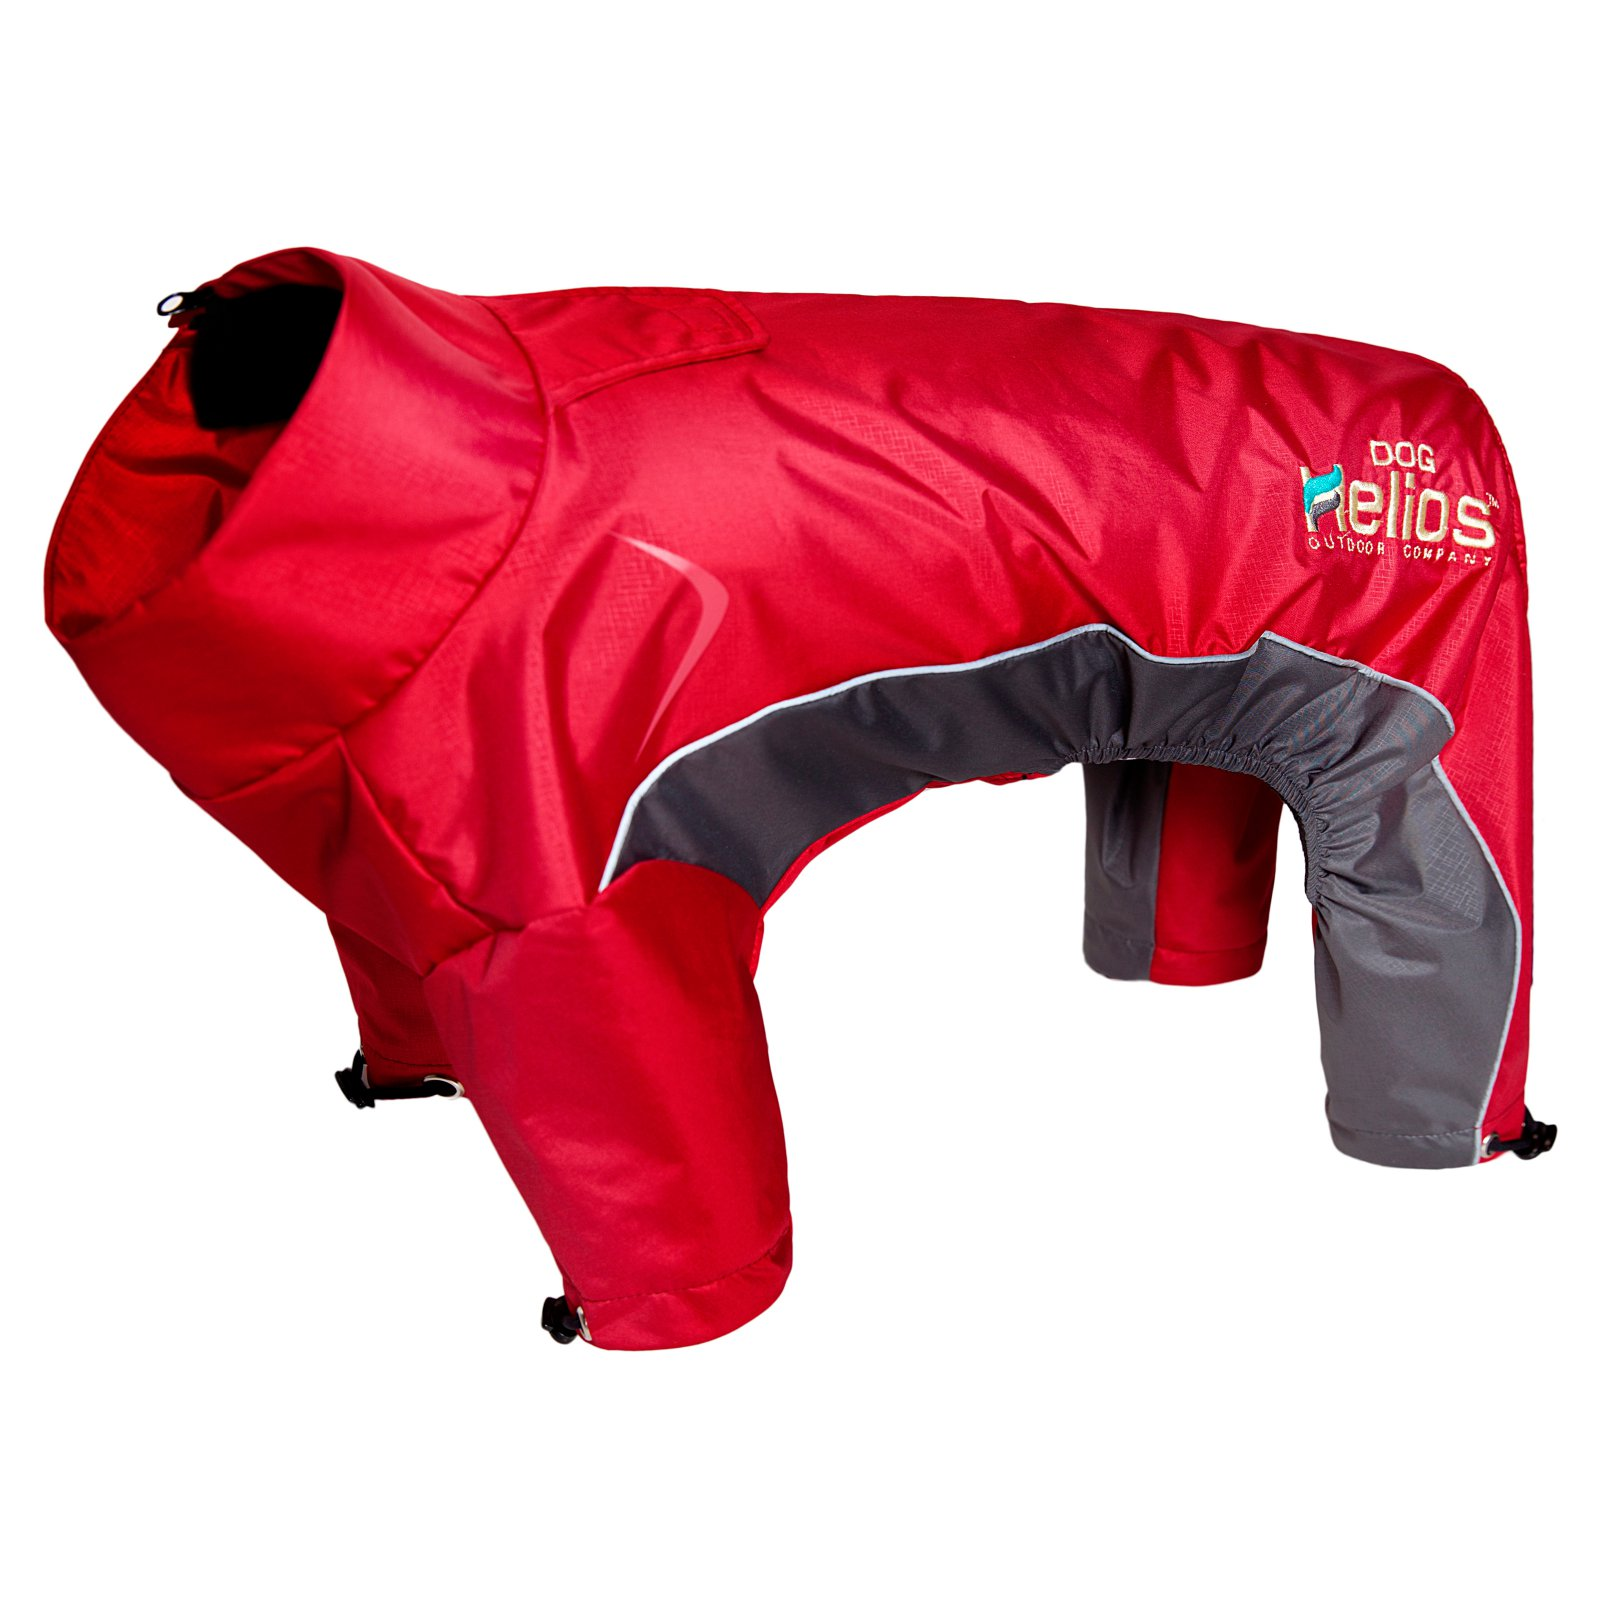 Pet Life Helios Blizzard Full-Bodied Adjustable and 3M Reflective Dog Jacket